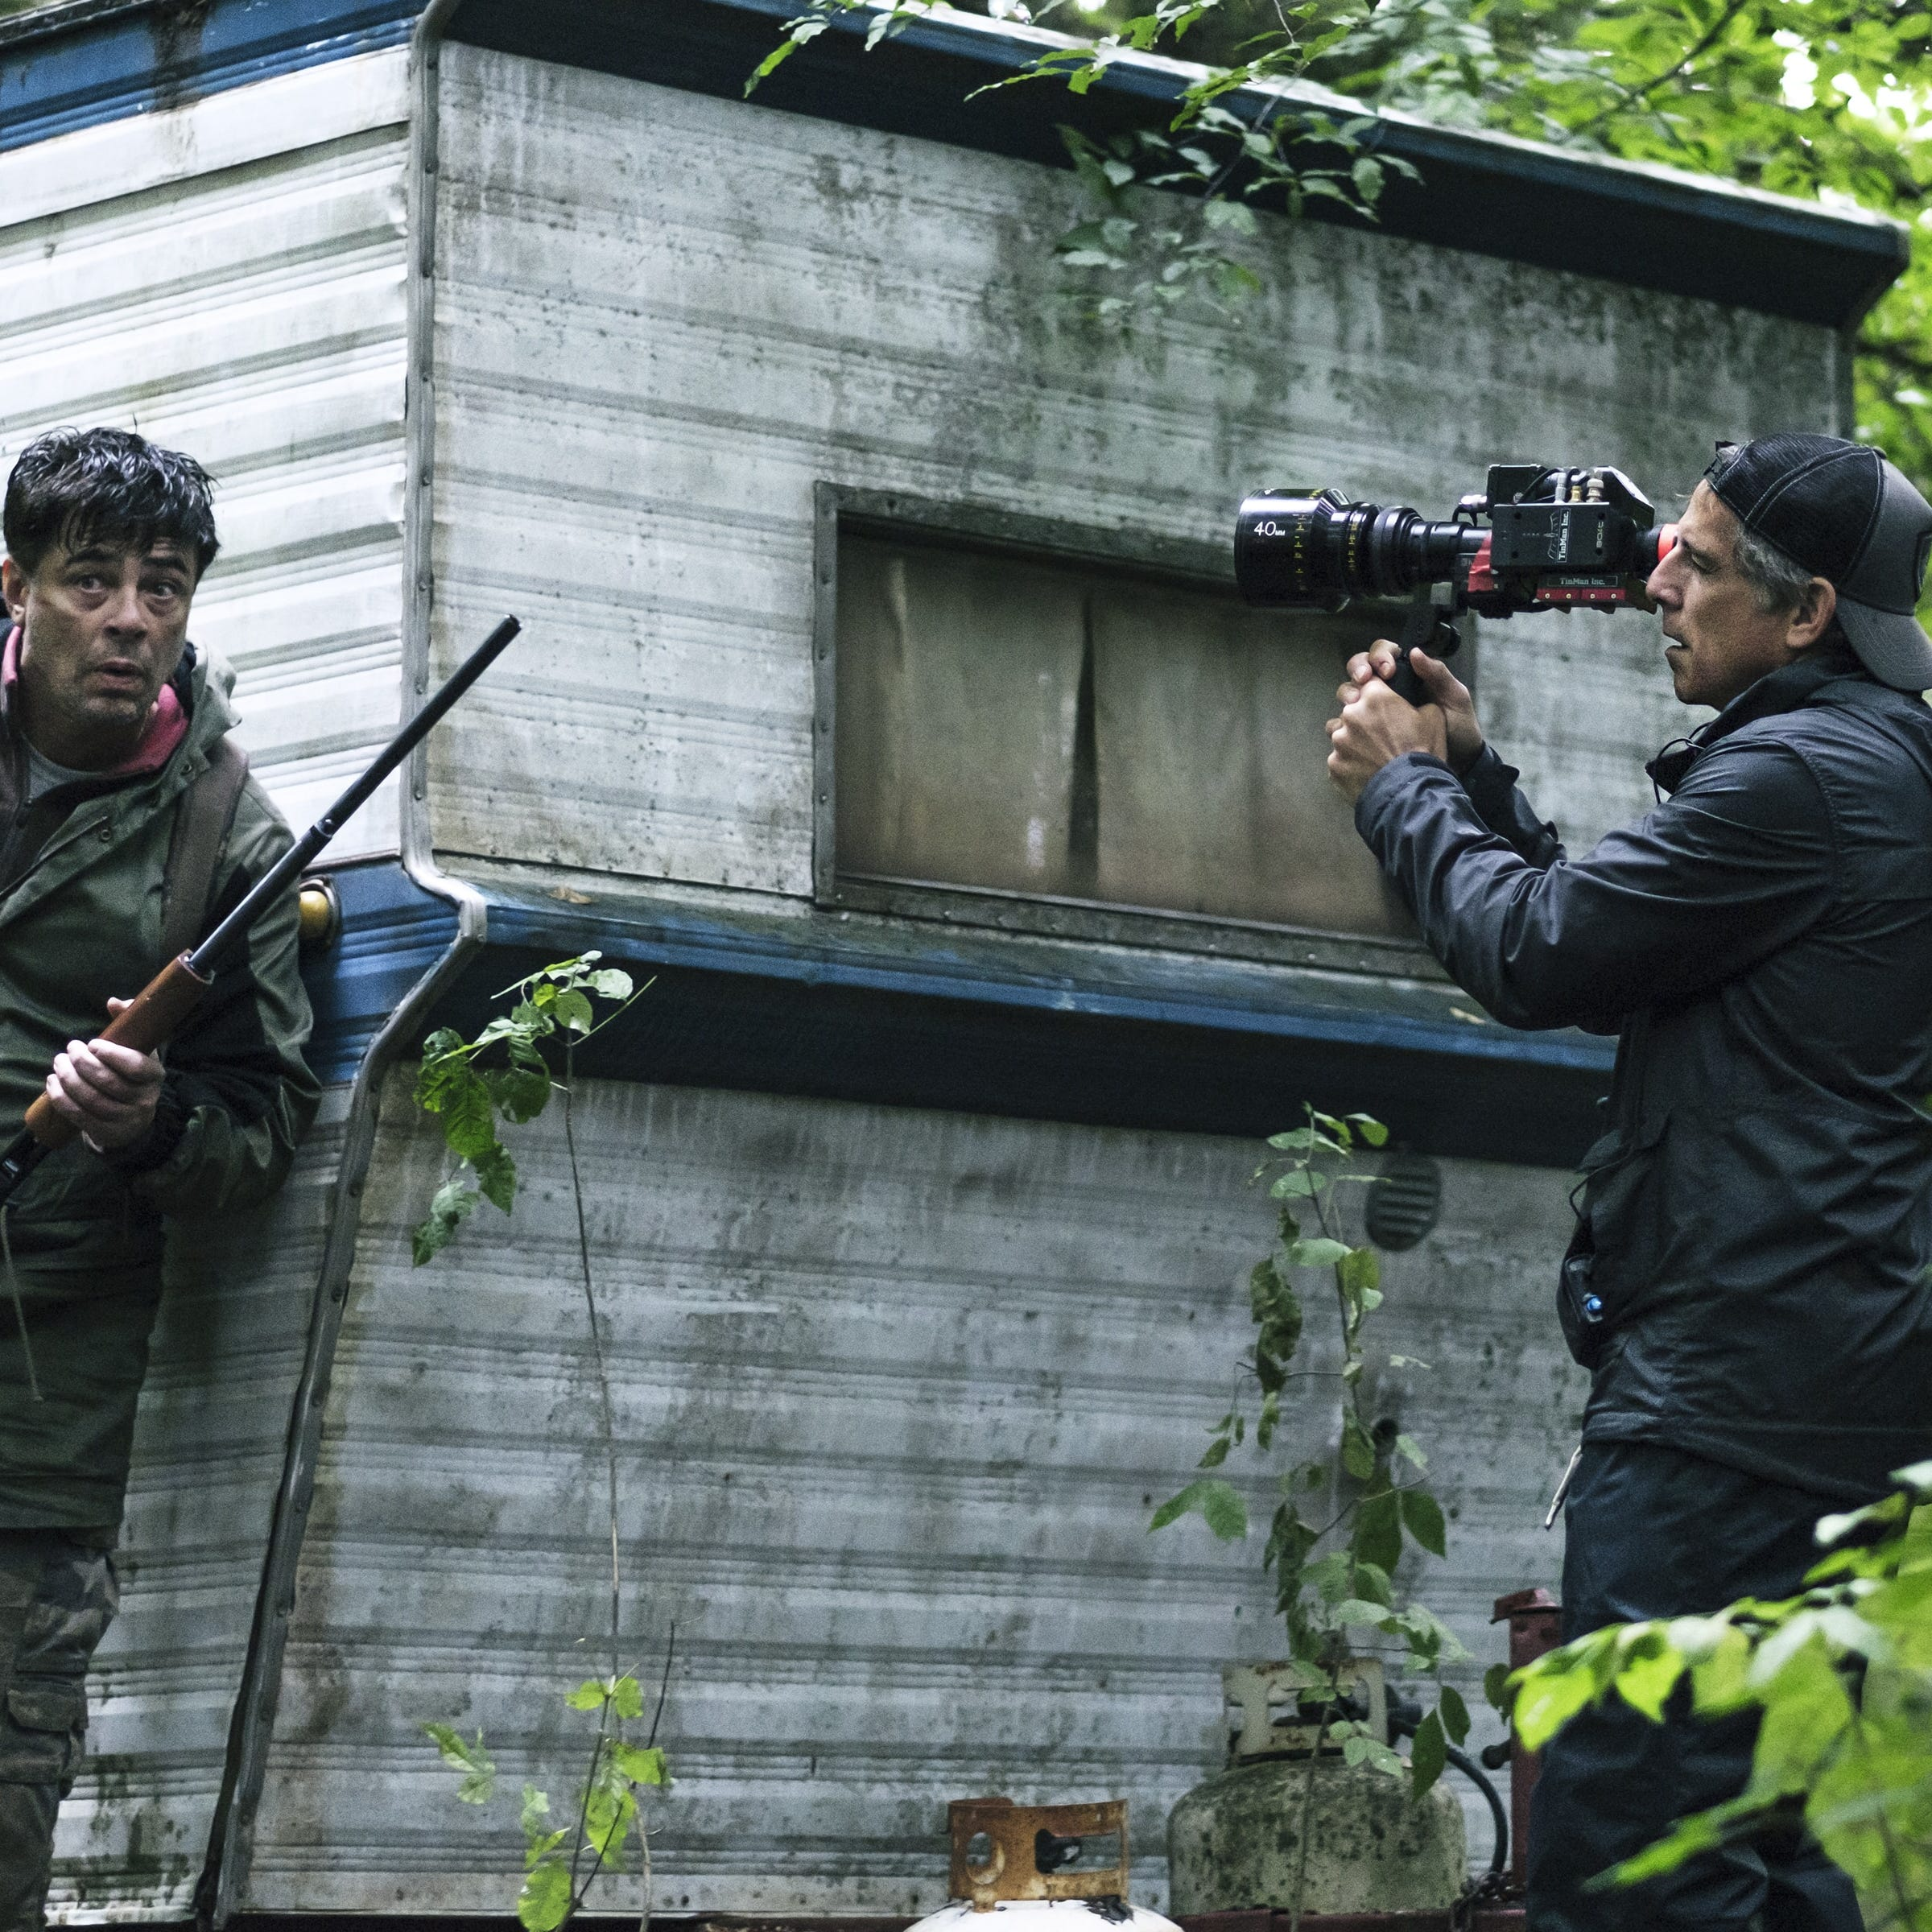 What reviewers are saying about 'Escape at Dannemora'